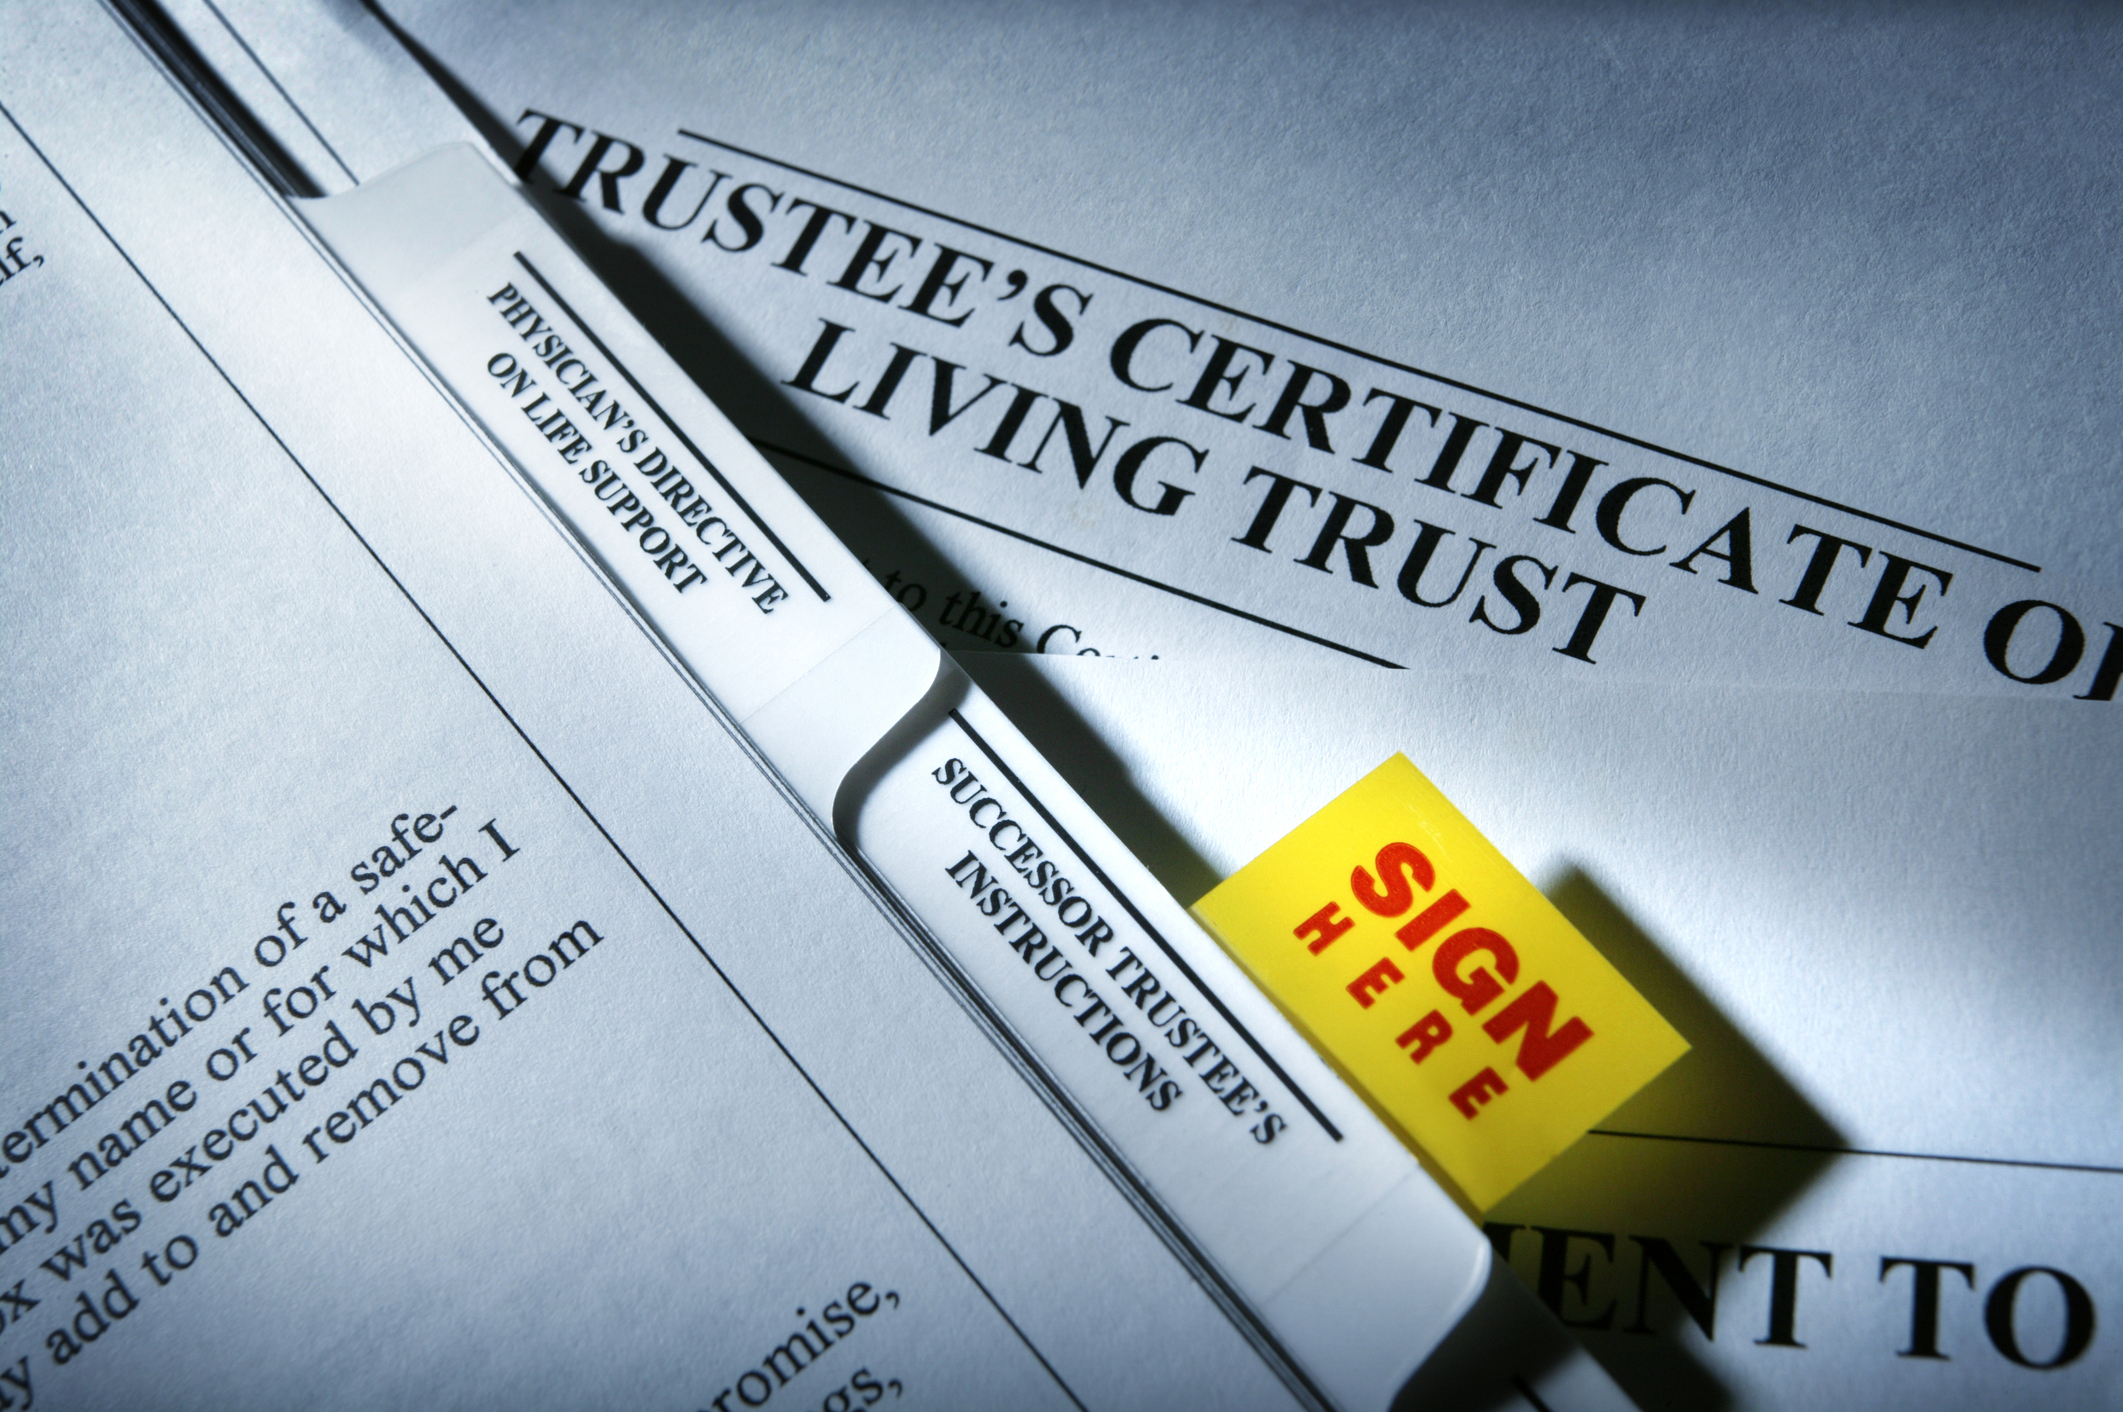 Living trust documents drafted to be clear and understandable.